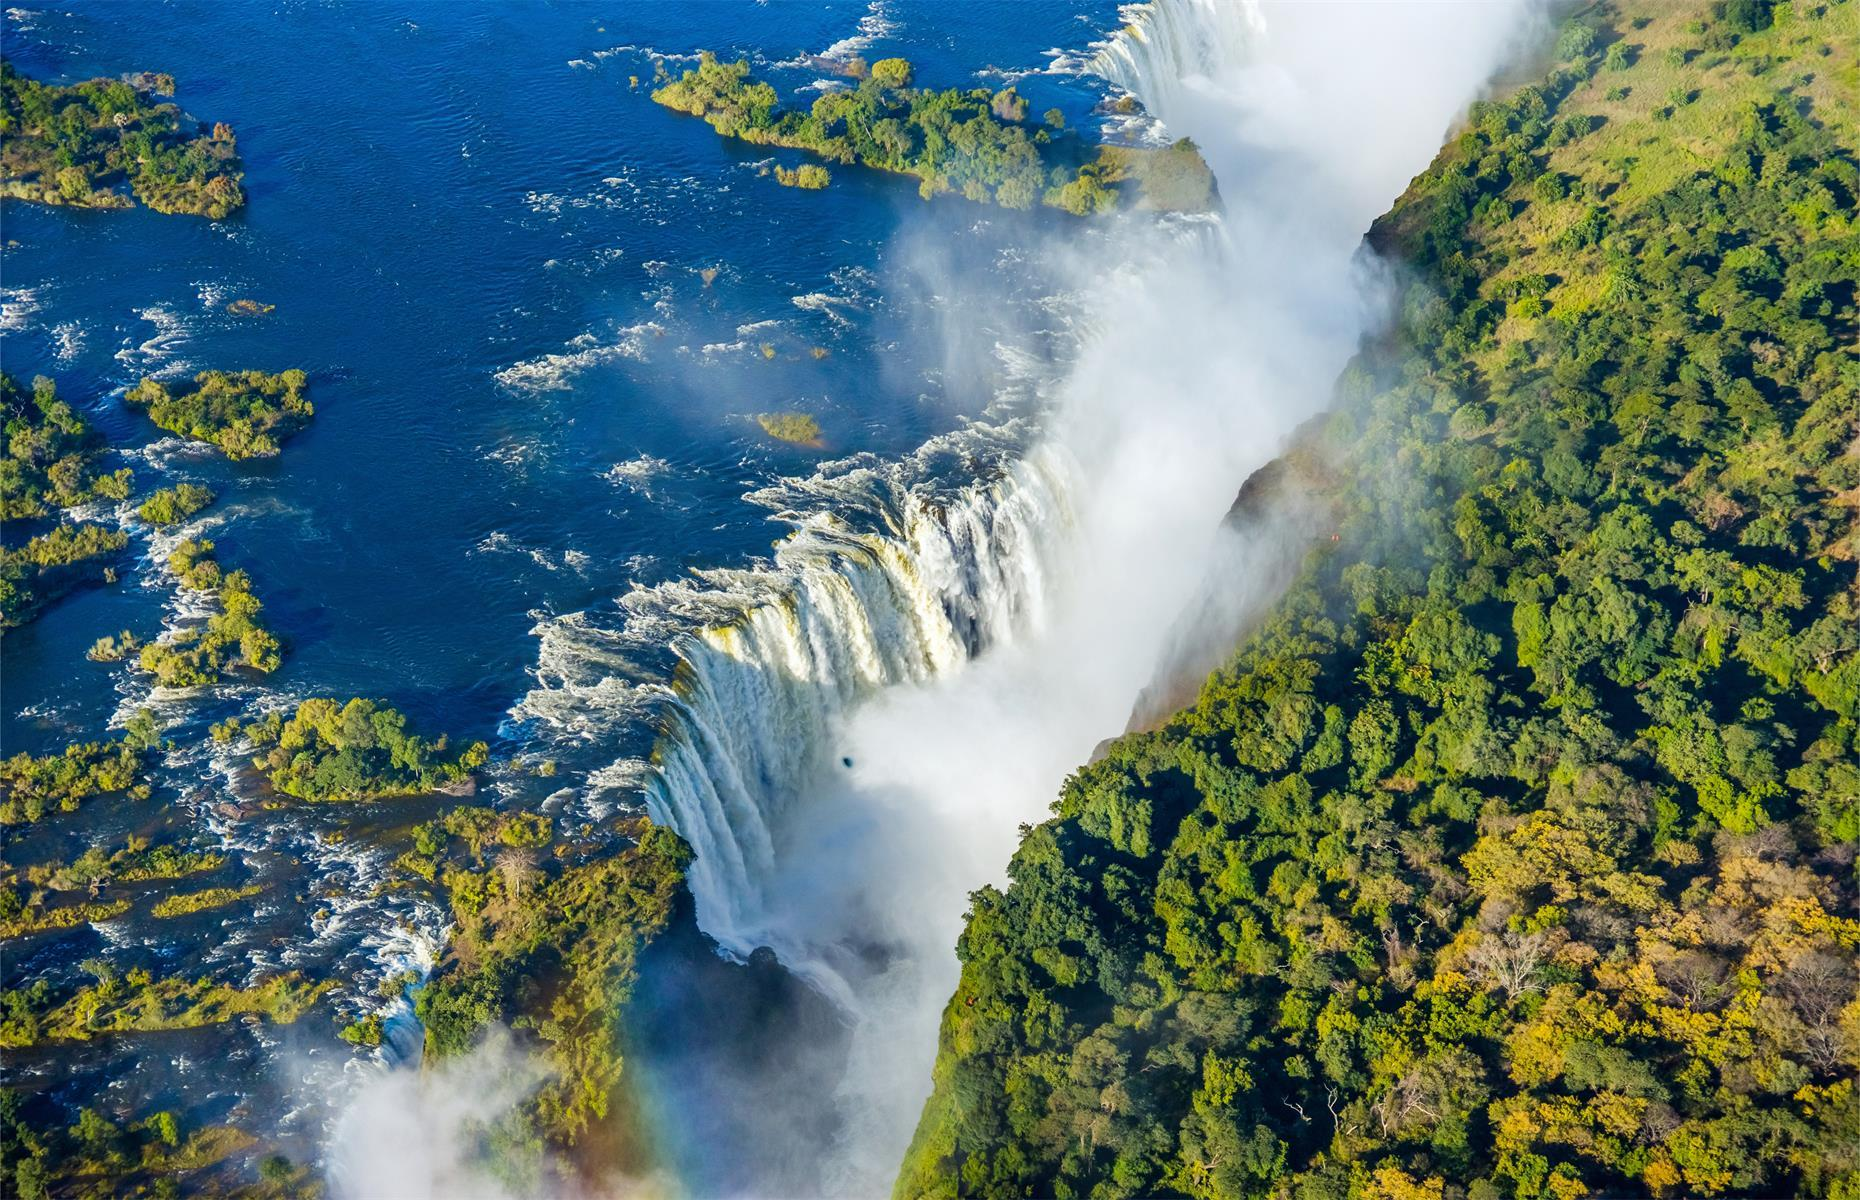 """Slide 19 of 51: Known as Mosi-oa-Tunya (""""the smoke that thunders"""") in the local language, this thundering curtain of water on the Zambia and Zimbabwe border is classed as the largest waterfall in the world, based on its width. At a whopping 5,604-foot-wide (1,708m) and 354-foot-long (108m), it's a striking reminder of the power of nature. There's also Devil's Pool, a little pocket of water on the edge of the abyss and a popular swimming spotfor thrill-seekers. See more incredible images of the beautiful and terrifying power of Mother Nature here."""